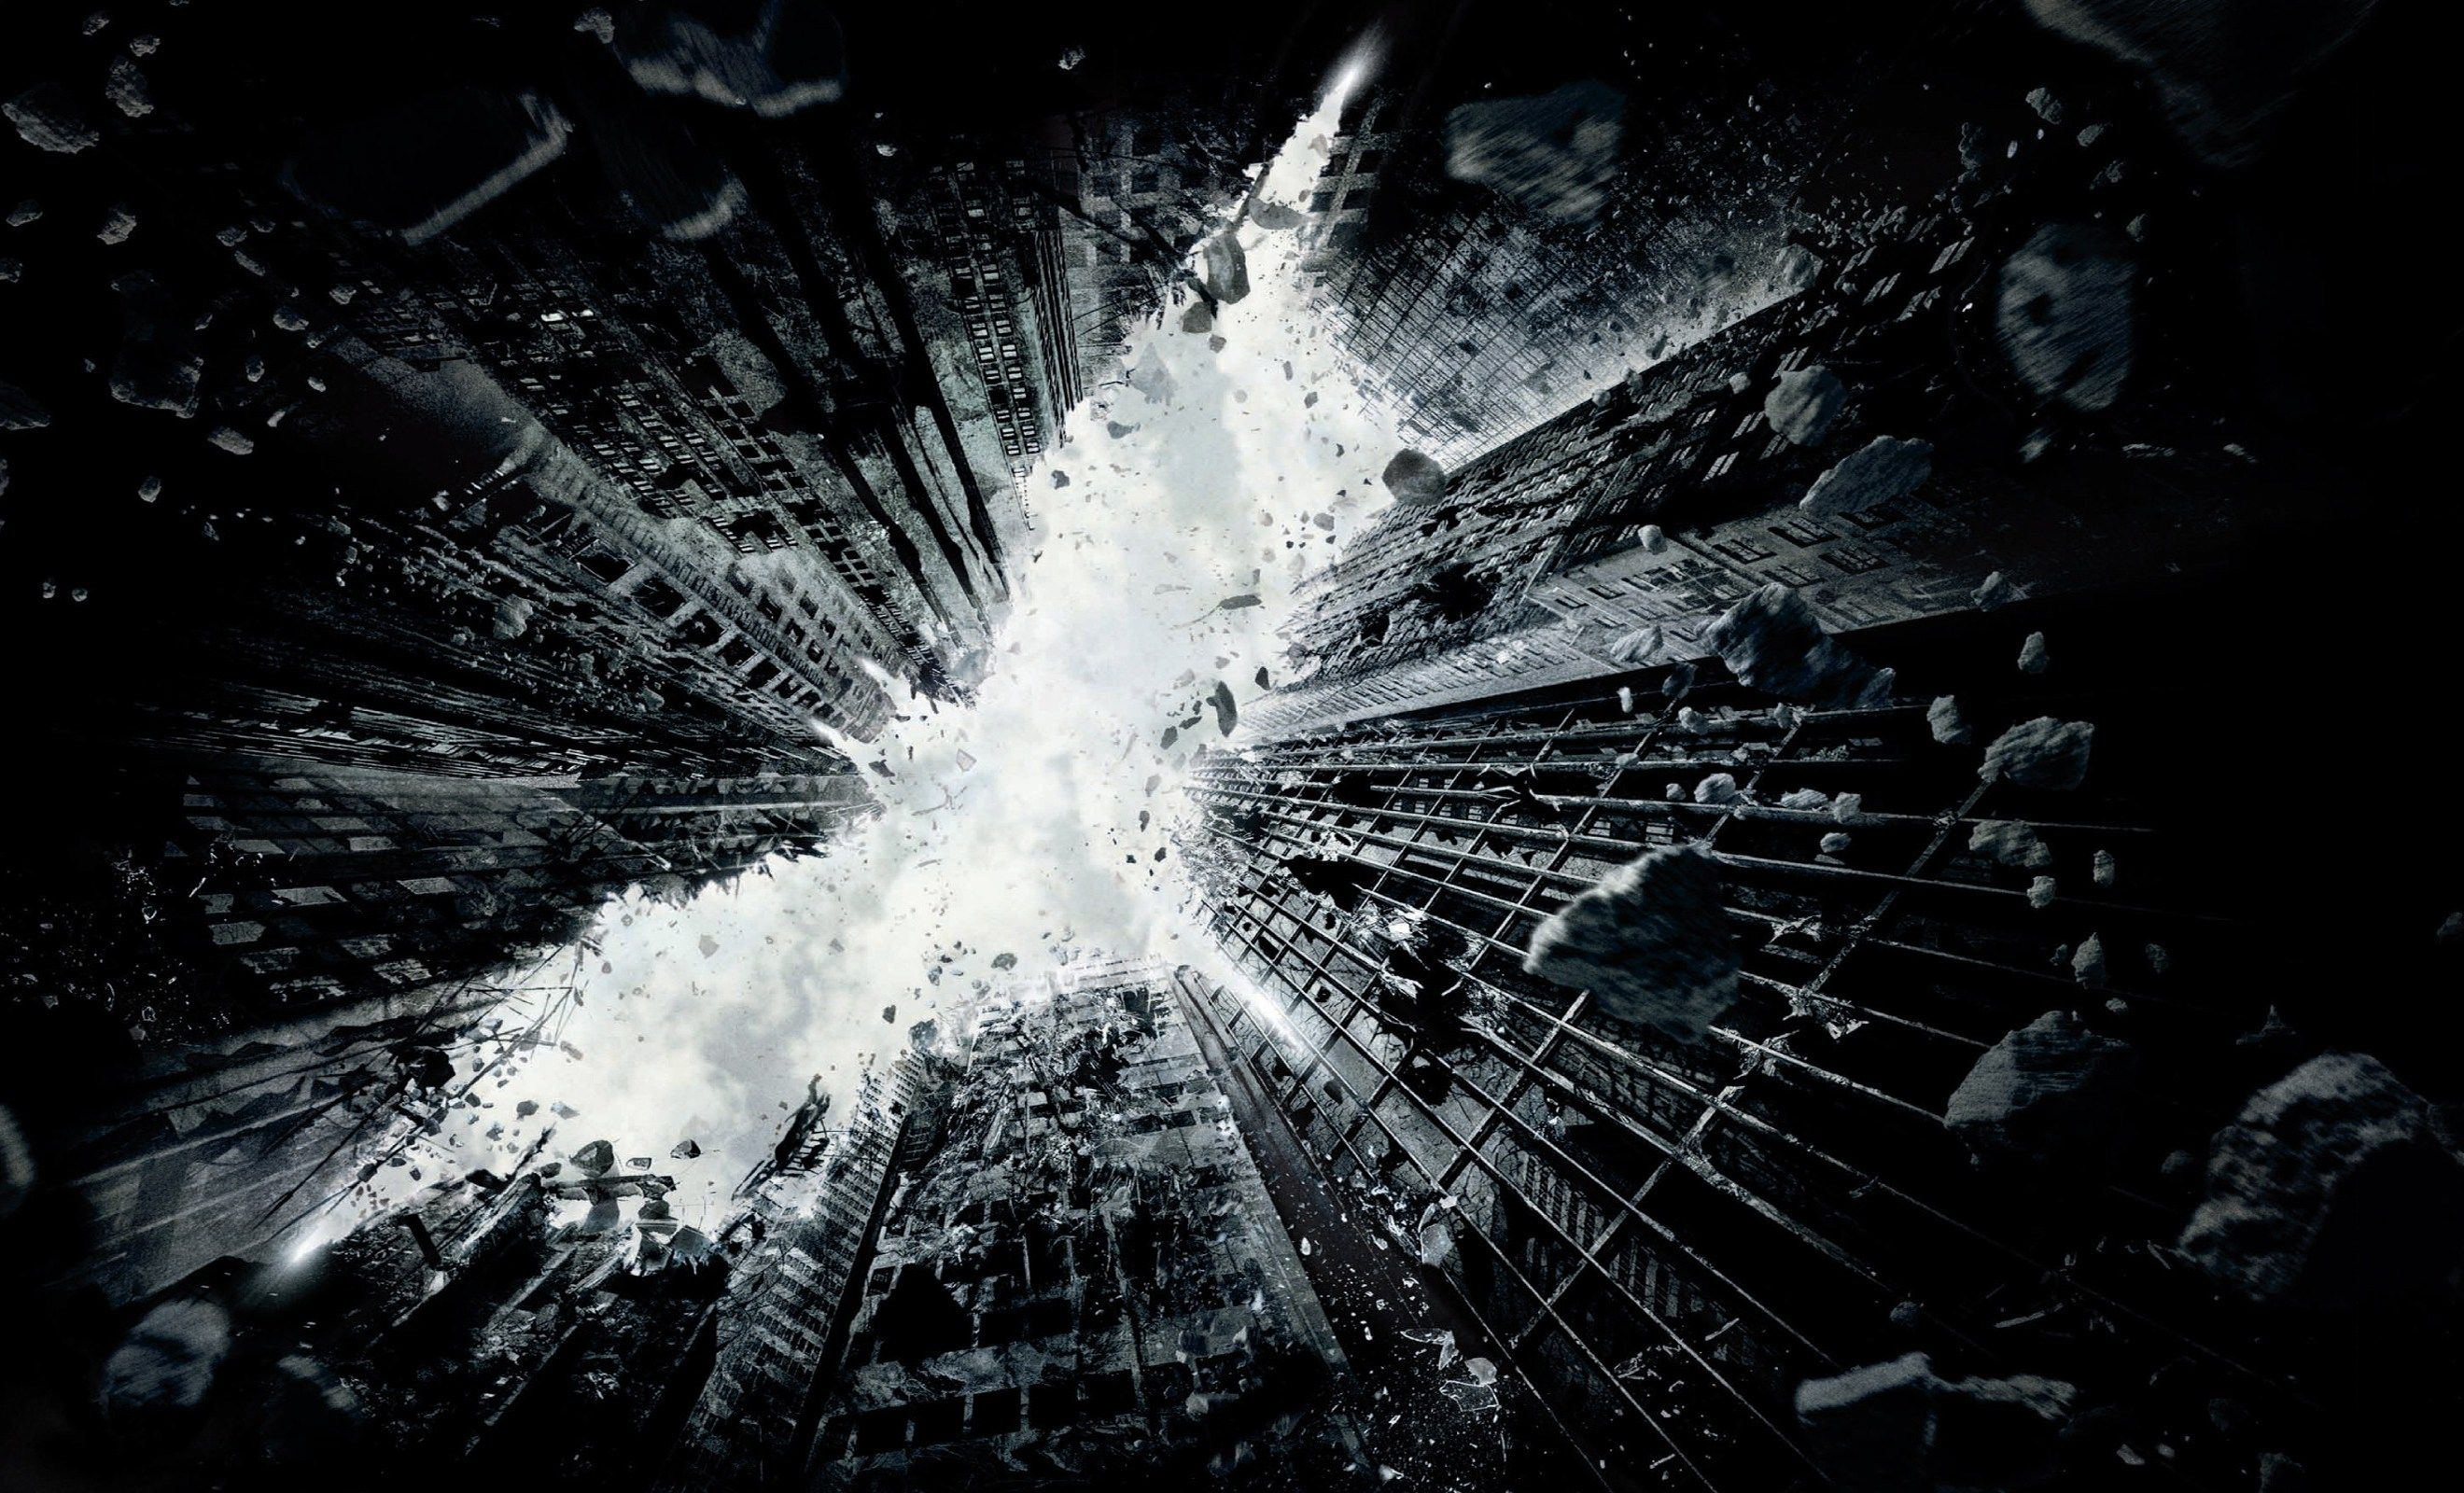 The Dark Knight Rises Wallpapers Top Free The Dark Knight Rises